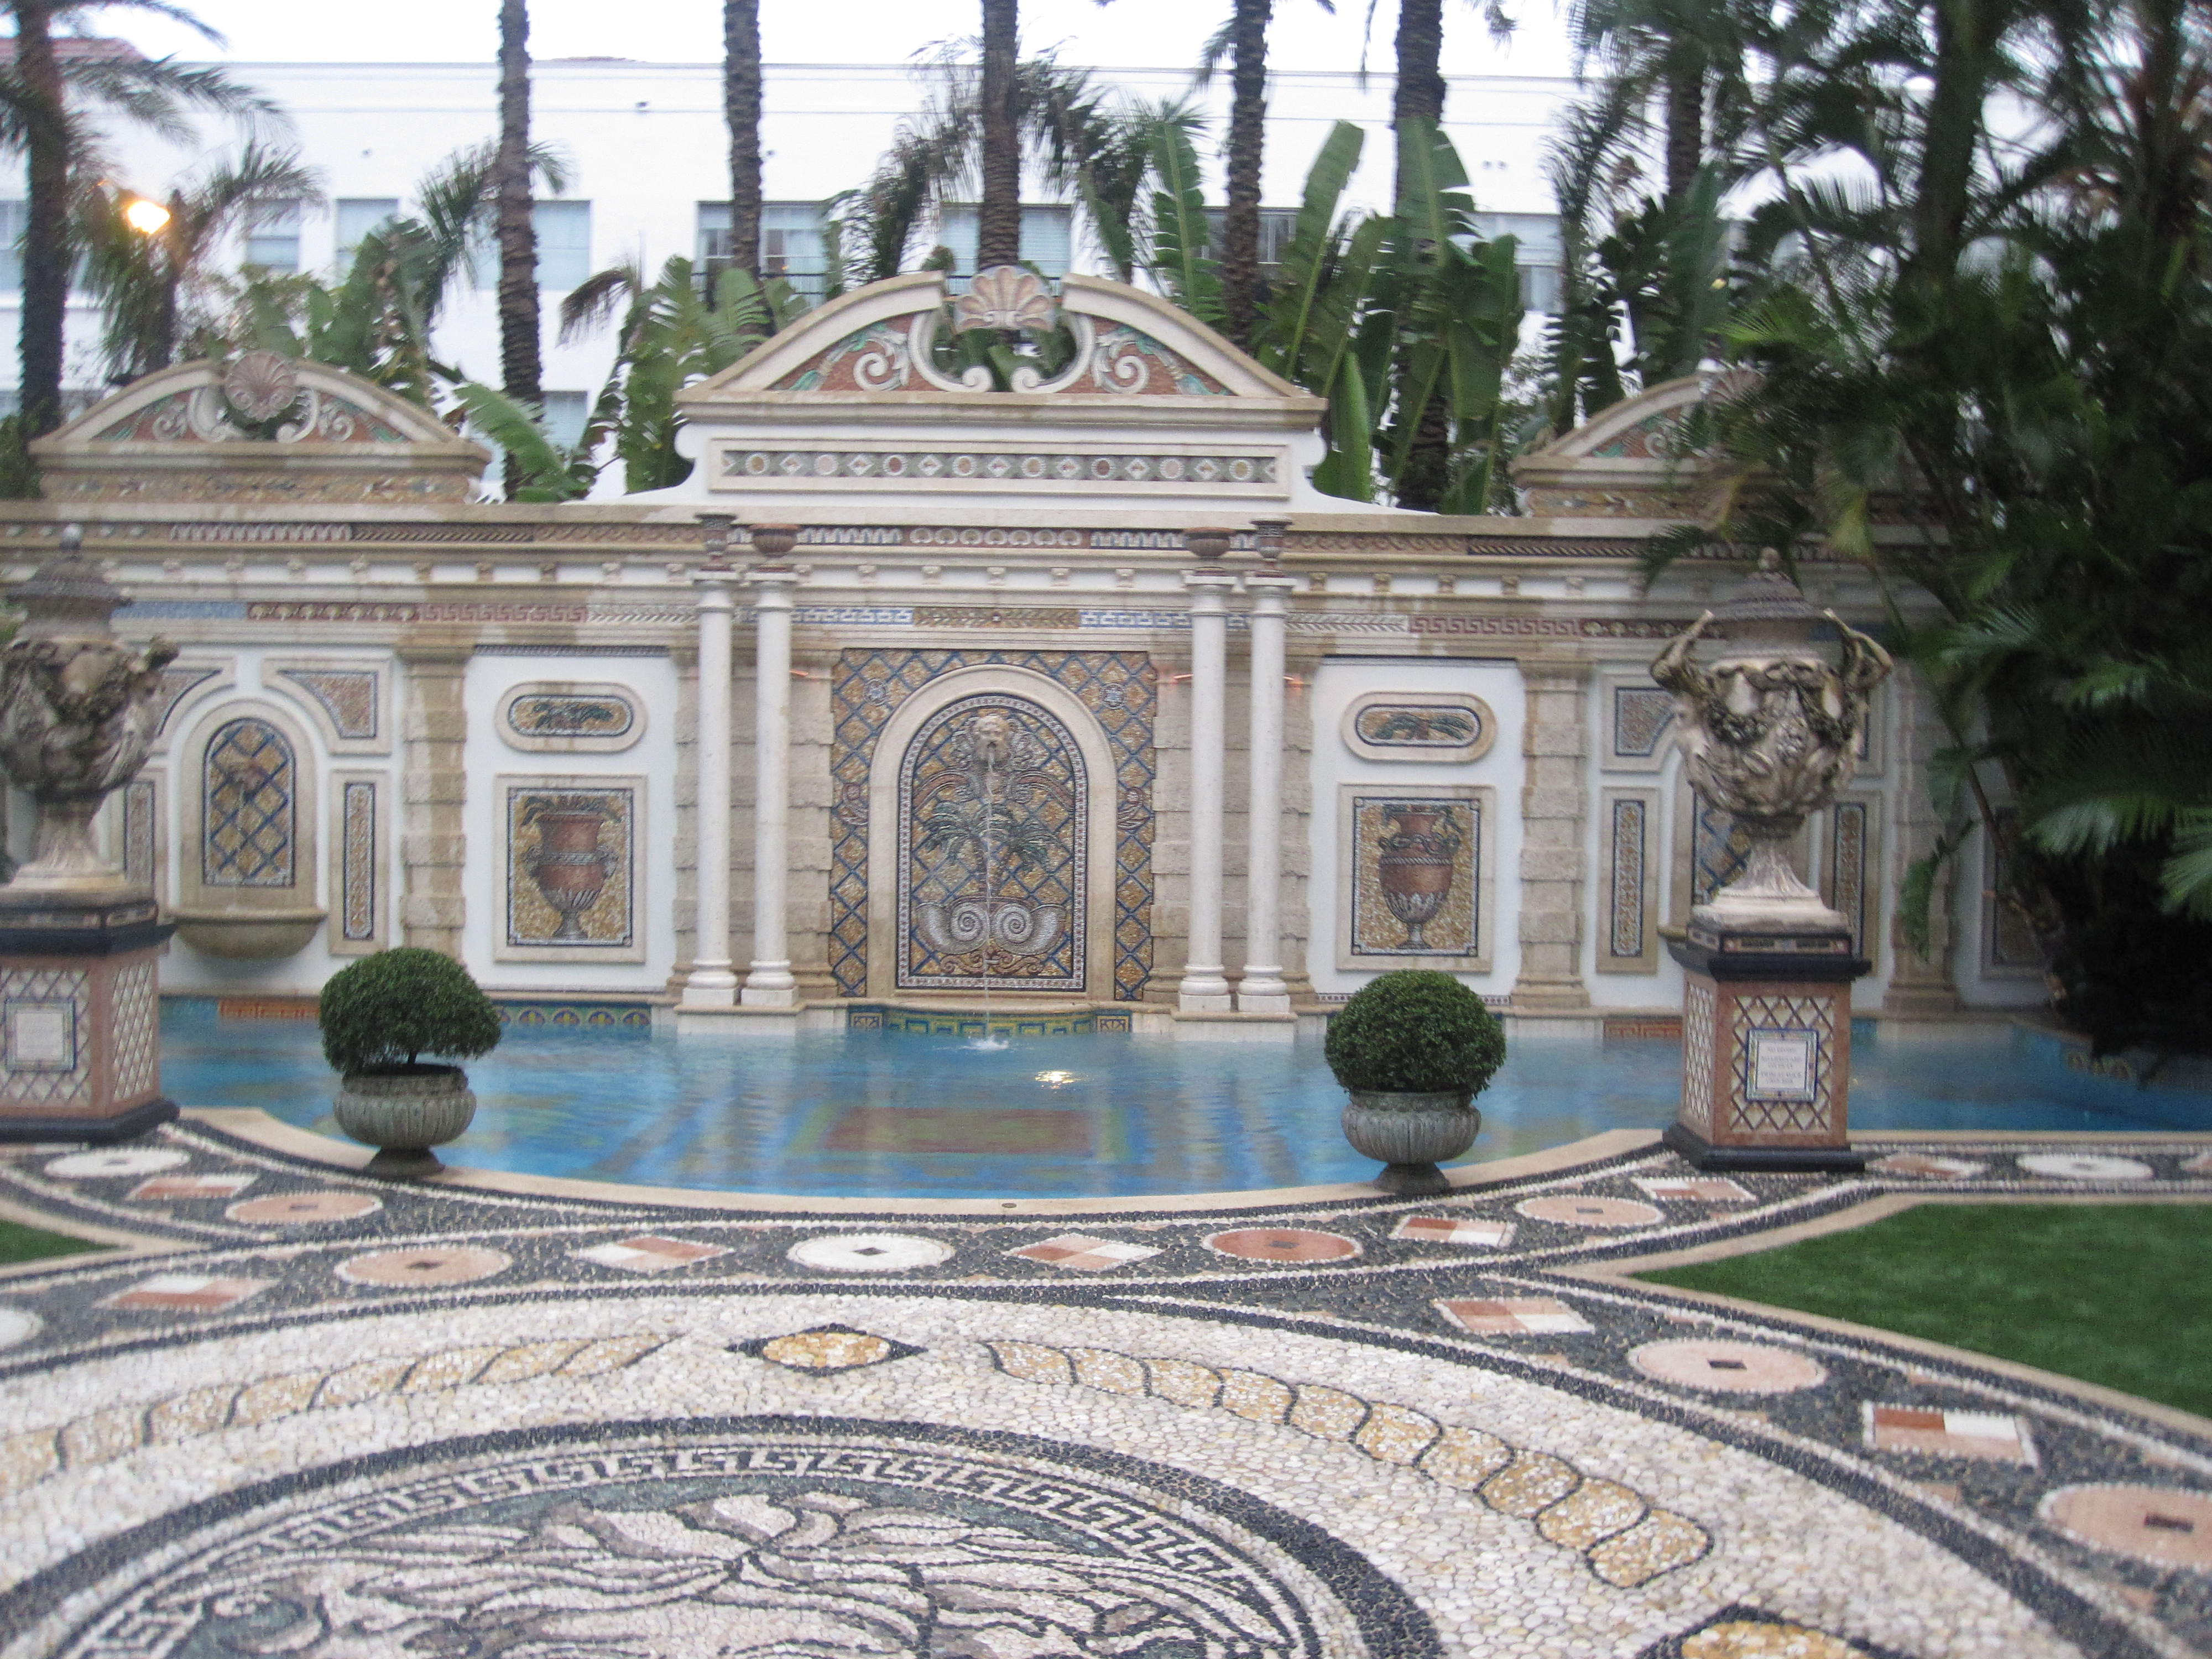 The beautiful pool and patio was meant to be the lush backdrop to a fabulous fete. Instead it's deserted due to the rain.